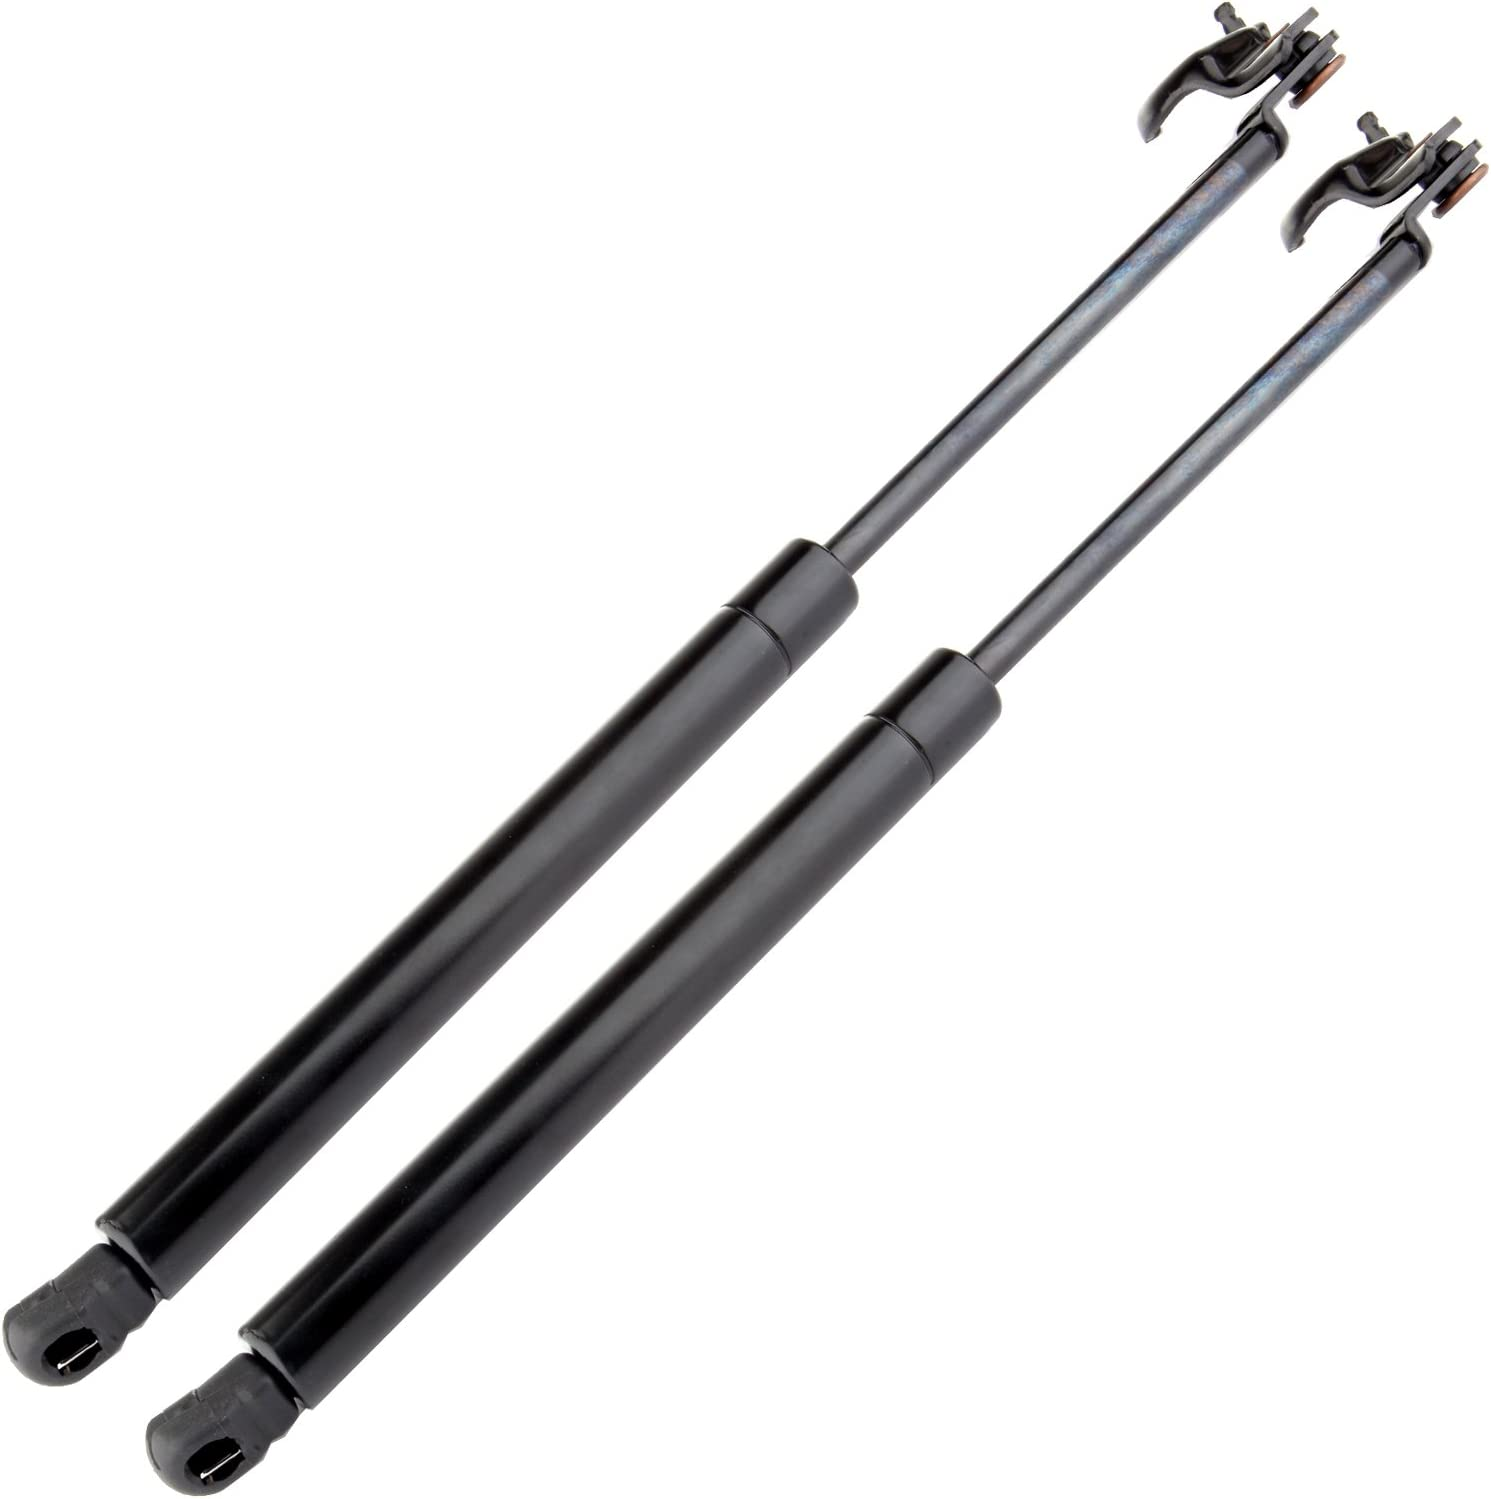 ECCPP Lift Supports Front Hood Cheap bargain Struts for Popular brand in the world Shocks Gas Springs 199